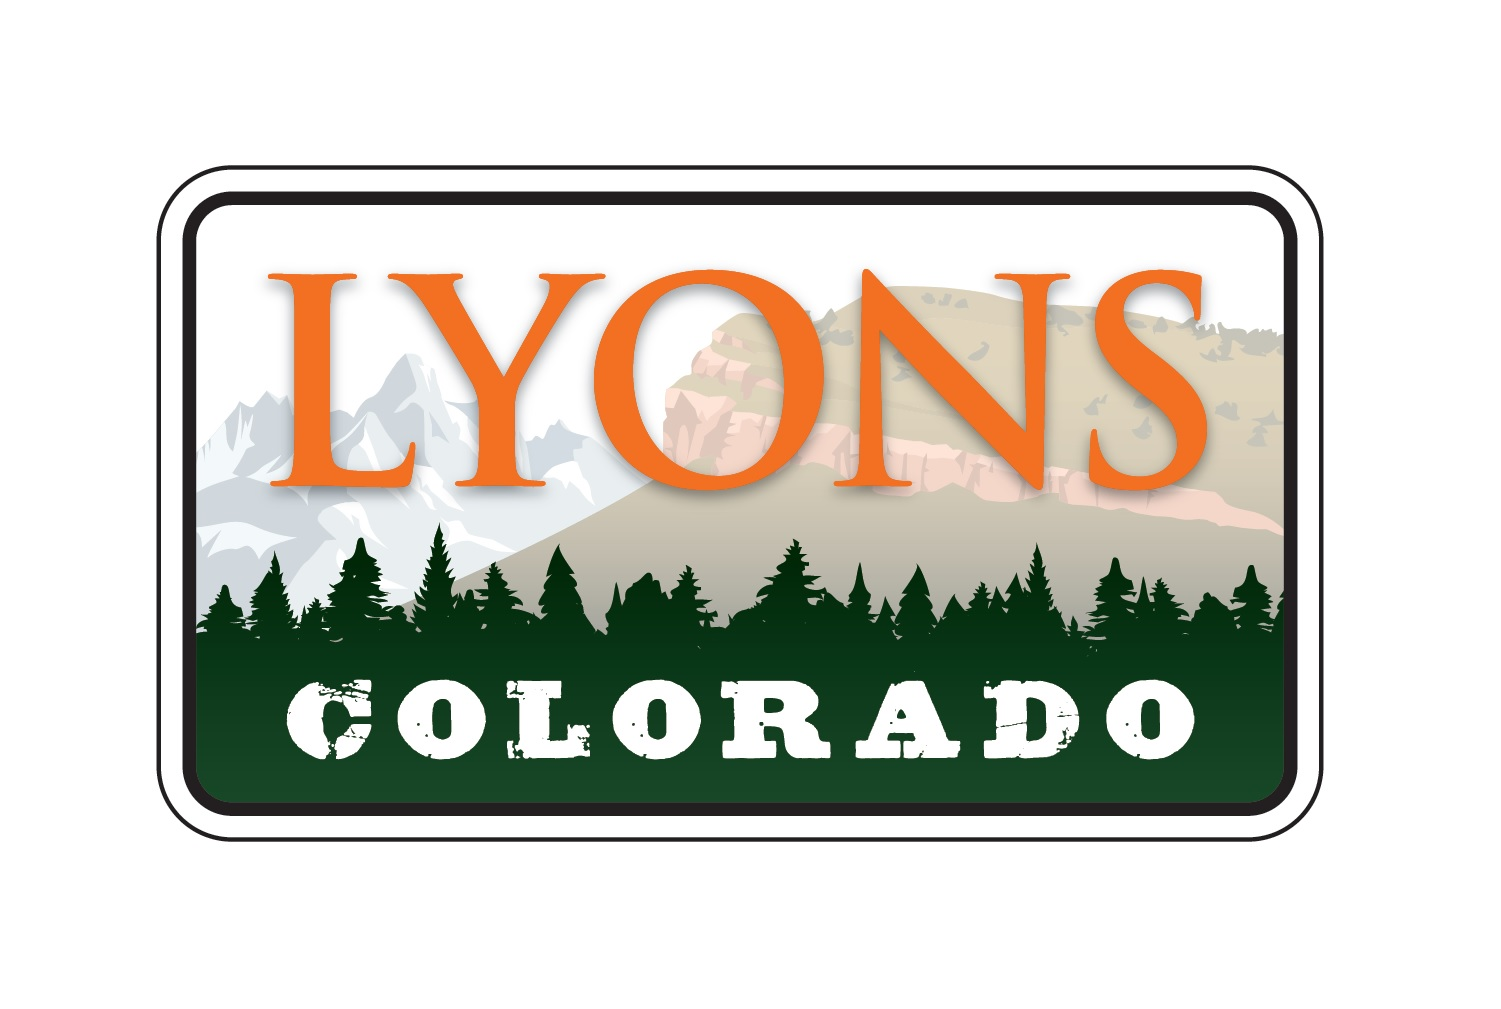 Organization logo of Town of Lyons